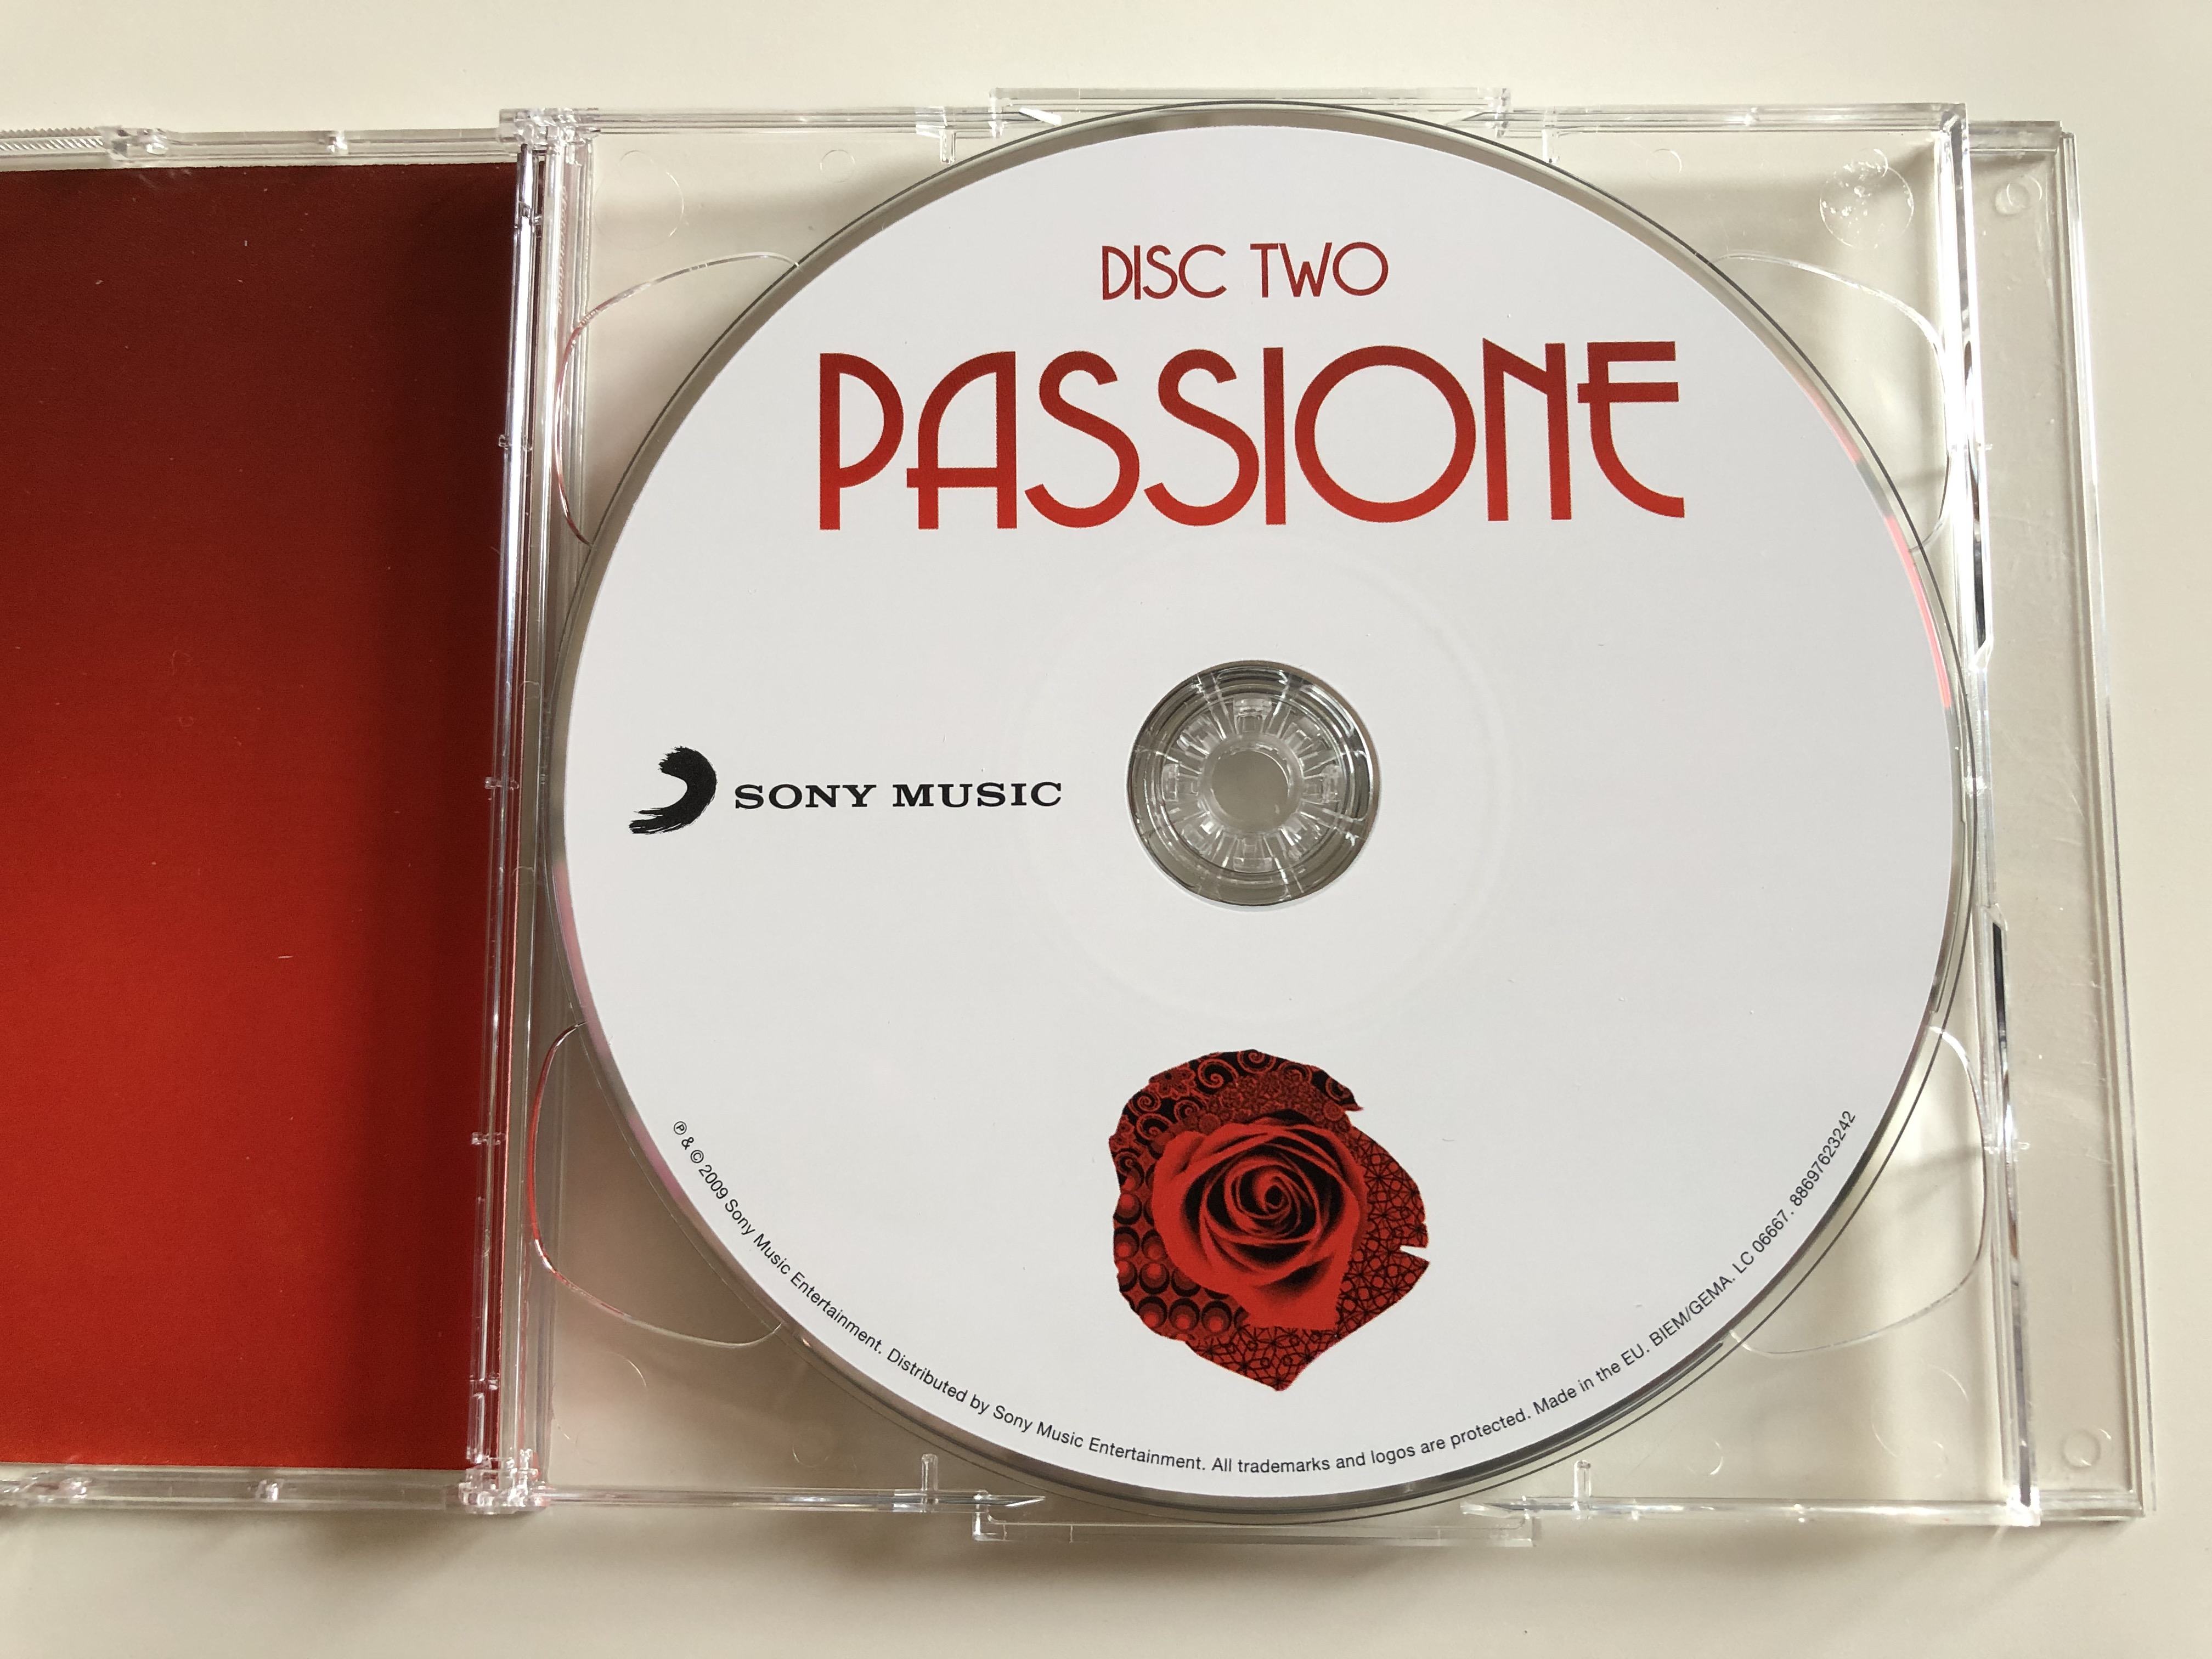 classic-interpreations-of-opera-and-pop-by-the-world-s-greatest-voices-passione-featuring-il-divo-luciano-pavarotti-malena-ernman-paul-potts-placido-domingo-jussi-bjorling-sarah-brightma-6-.jpg